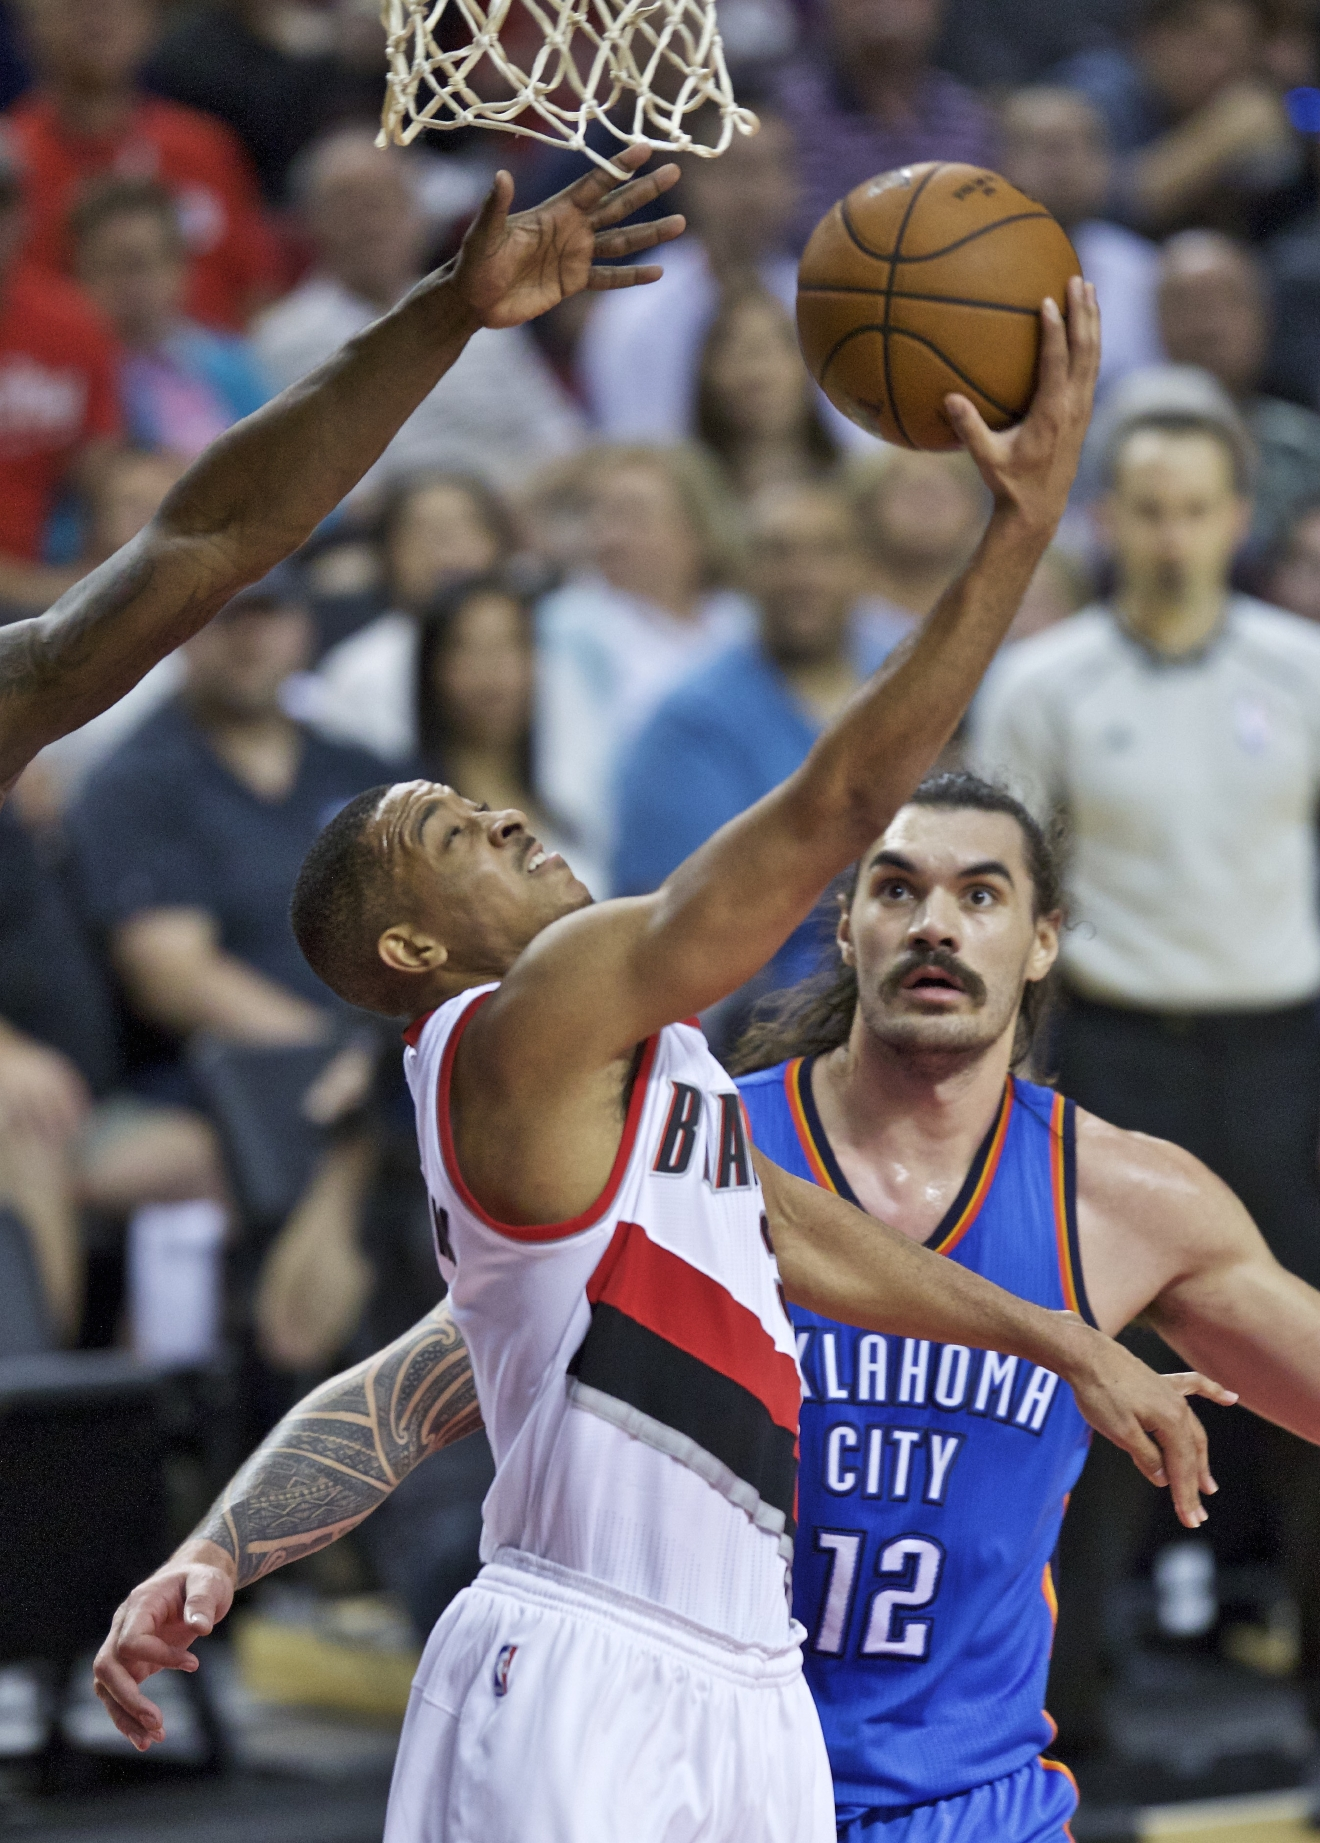 Portland Trail Blazers guard C.J. McCollum shoots in front of Oklahoma City Thunder center Steven Adams during the second half of an NBA basketball game in Portland, Ore., Wednesday, April 6, 2016. (AP Photo/Craig Mitchelldyer)